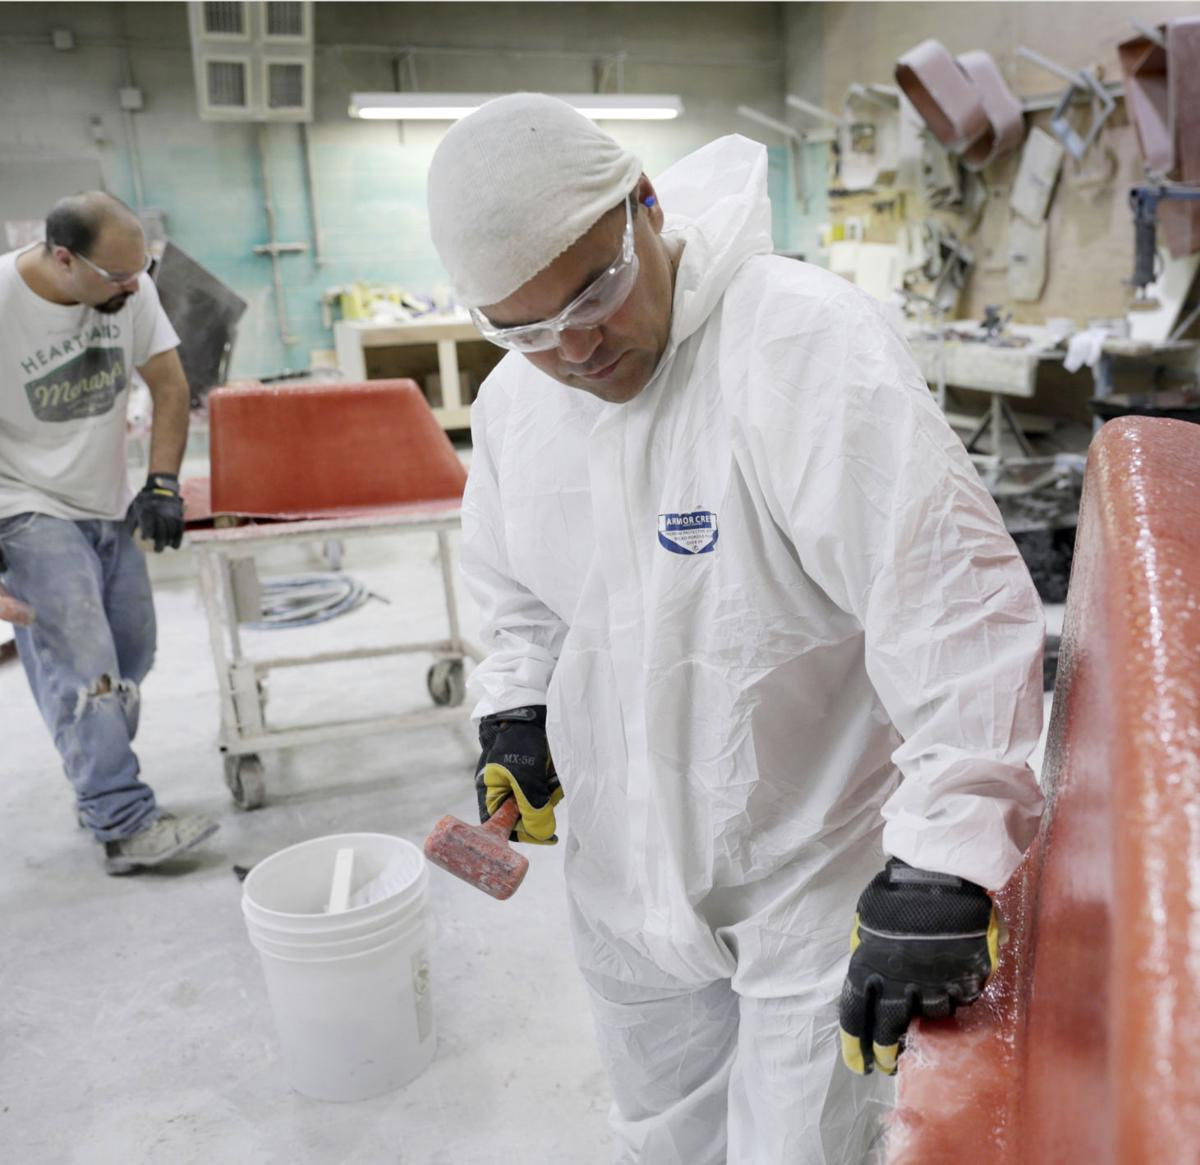 Workers Wanted: 2-Yacht manufacturer that cut 1,000 jobs struggles to fill 70